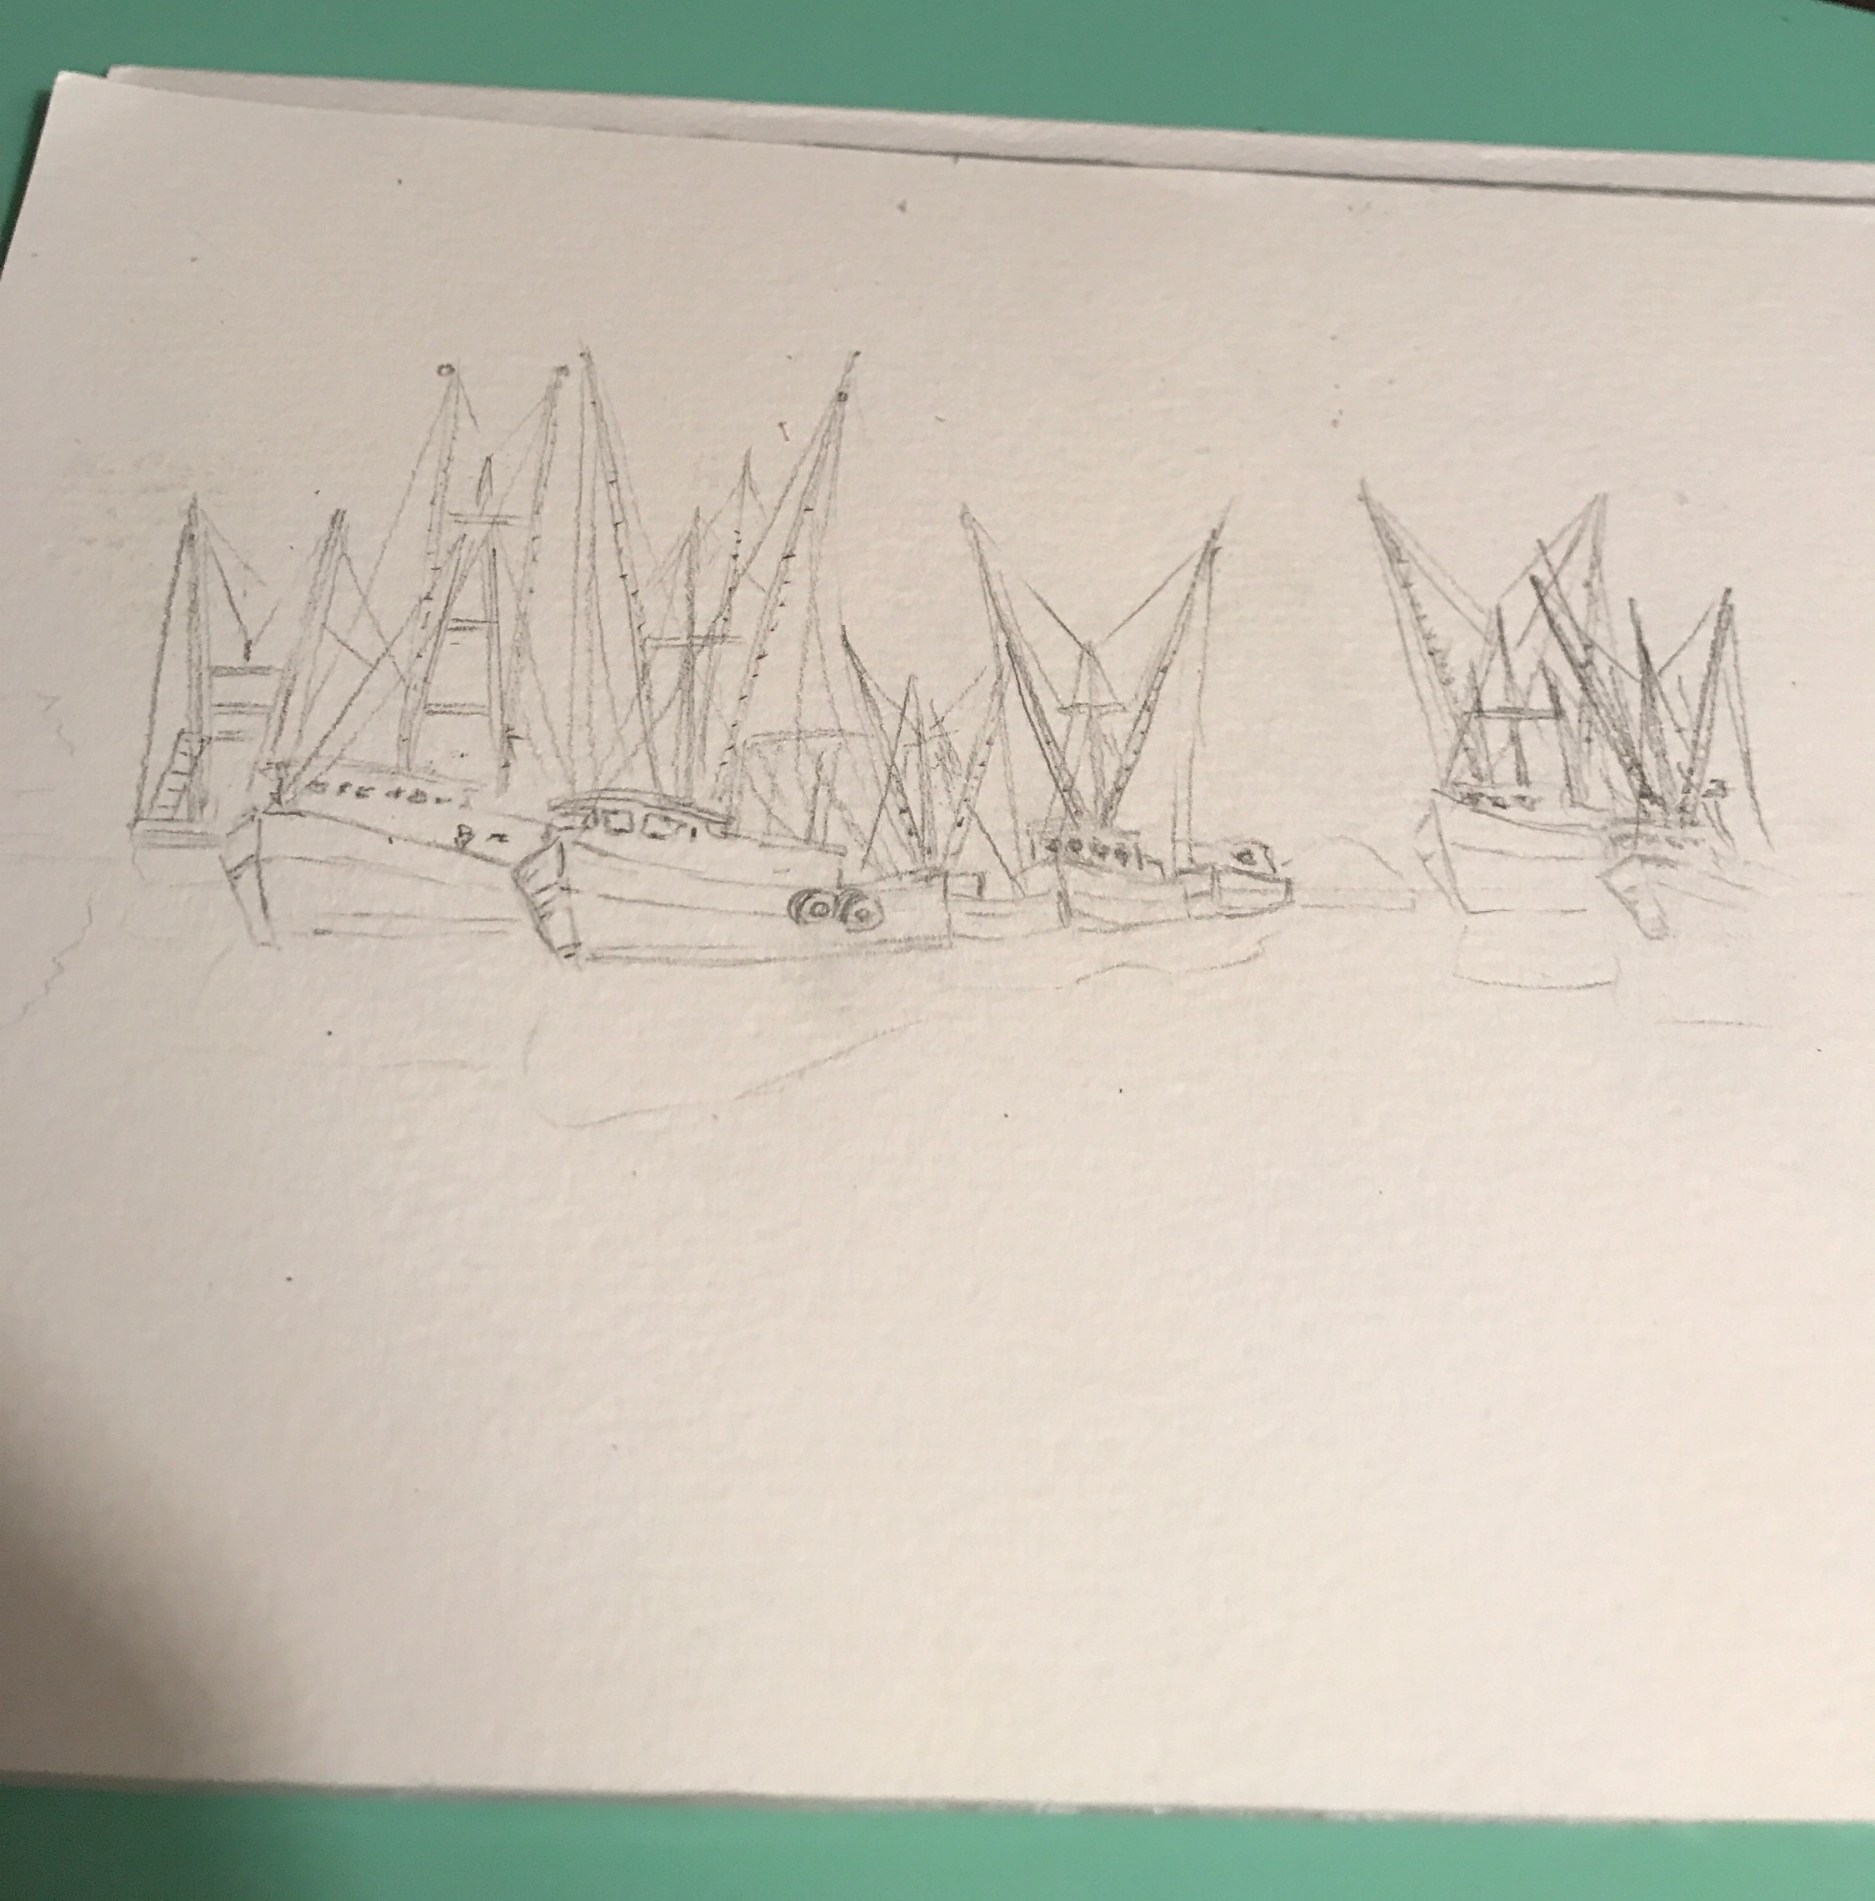 Outlining the boats